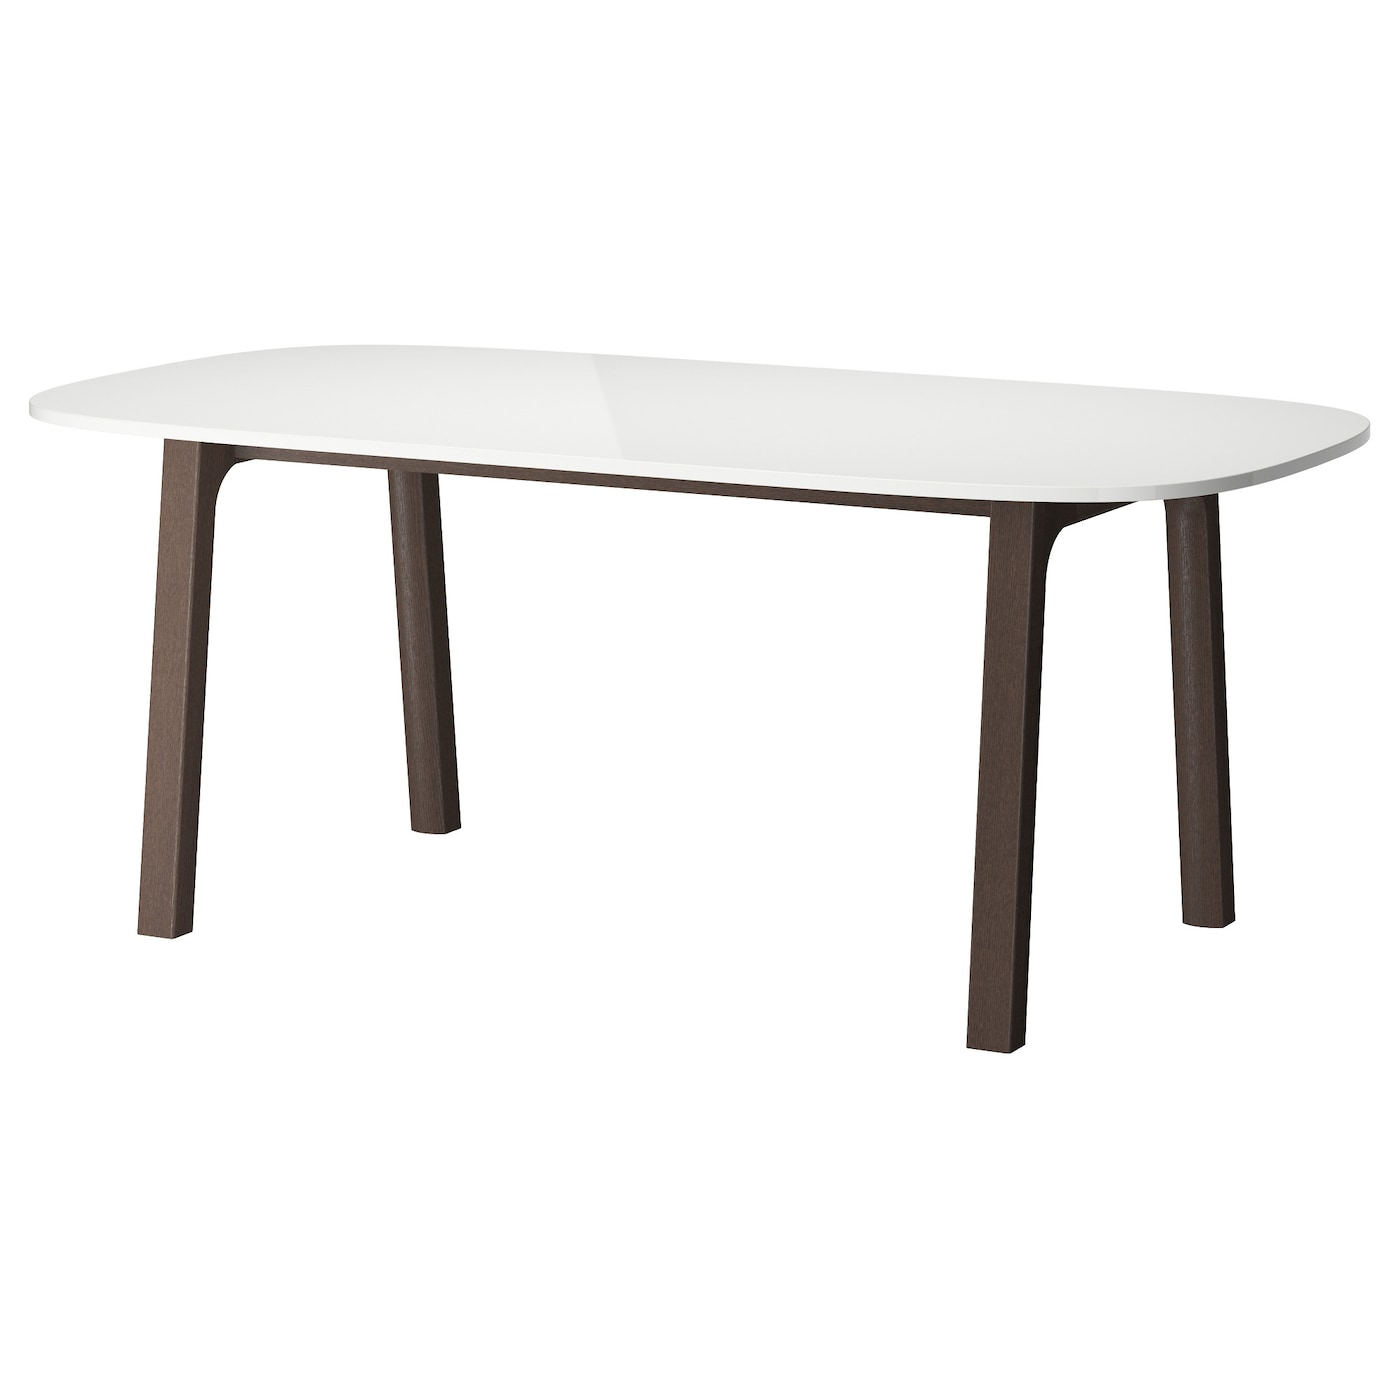 Oppeby Table White V Stan Dark Brown 185x90 Cm Ikea